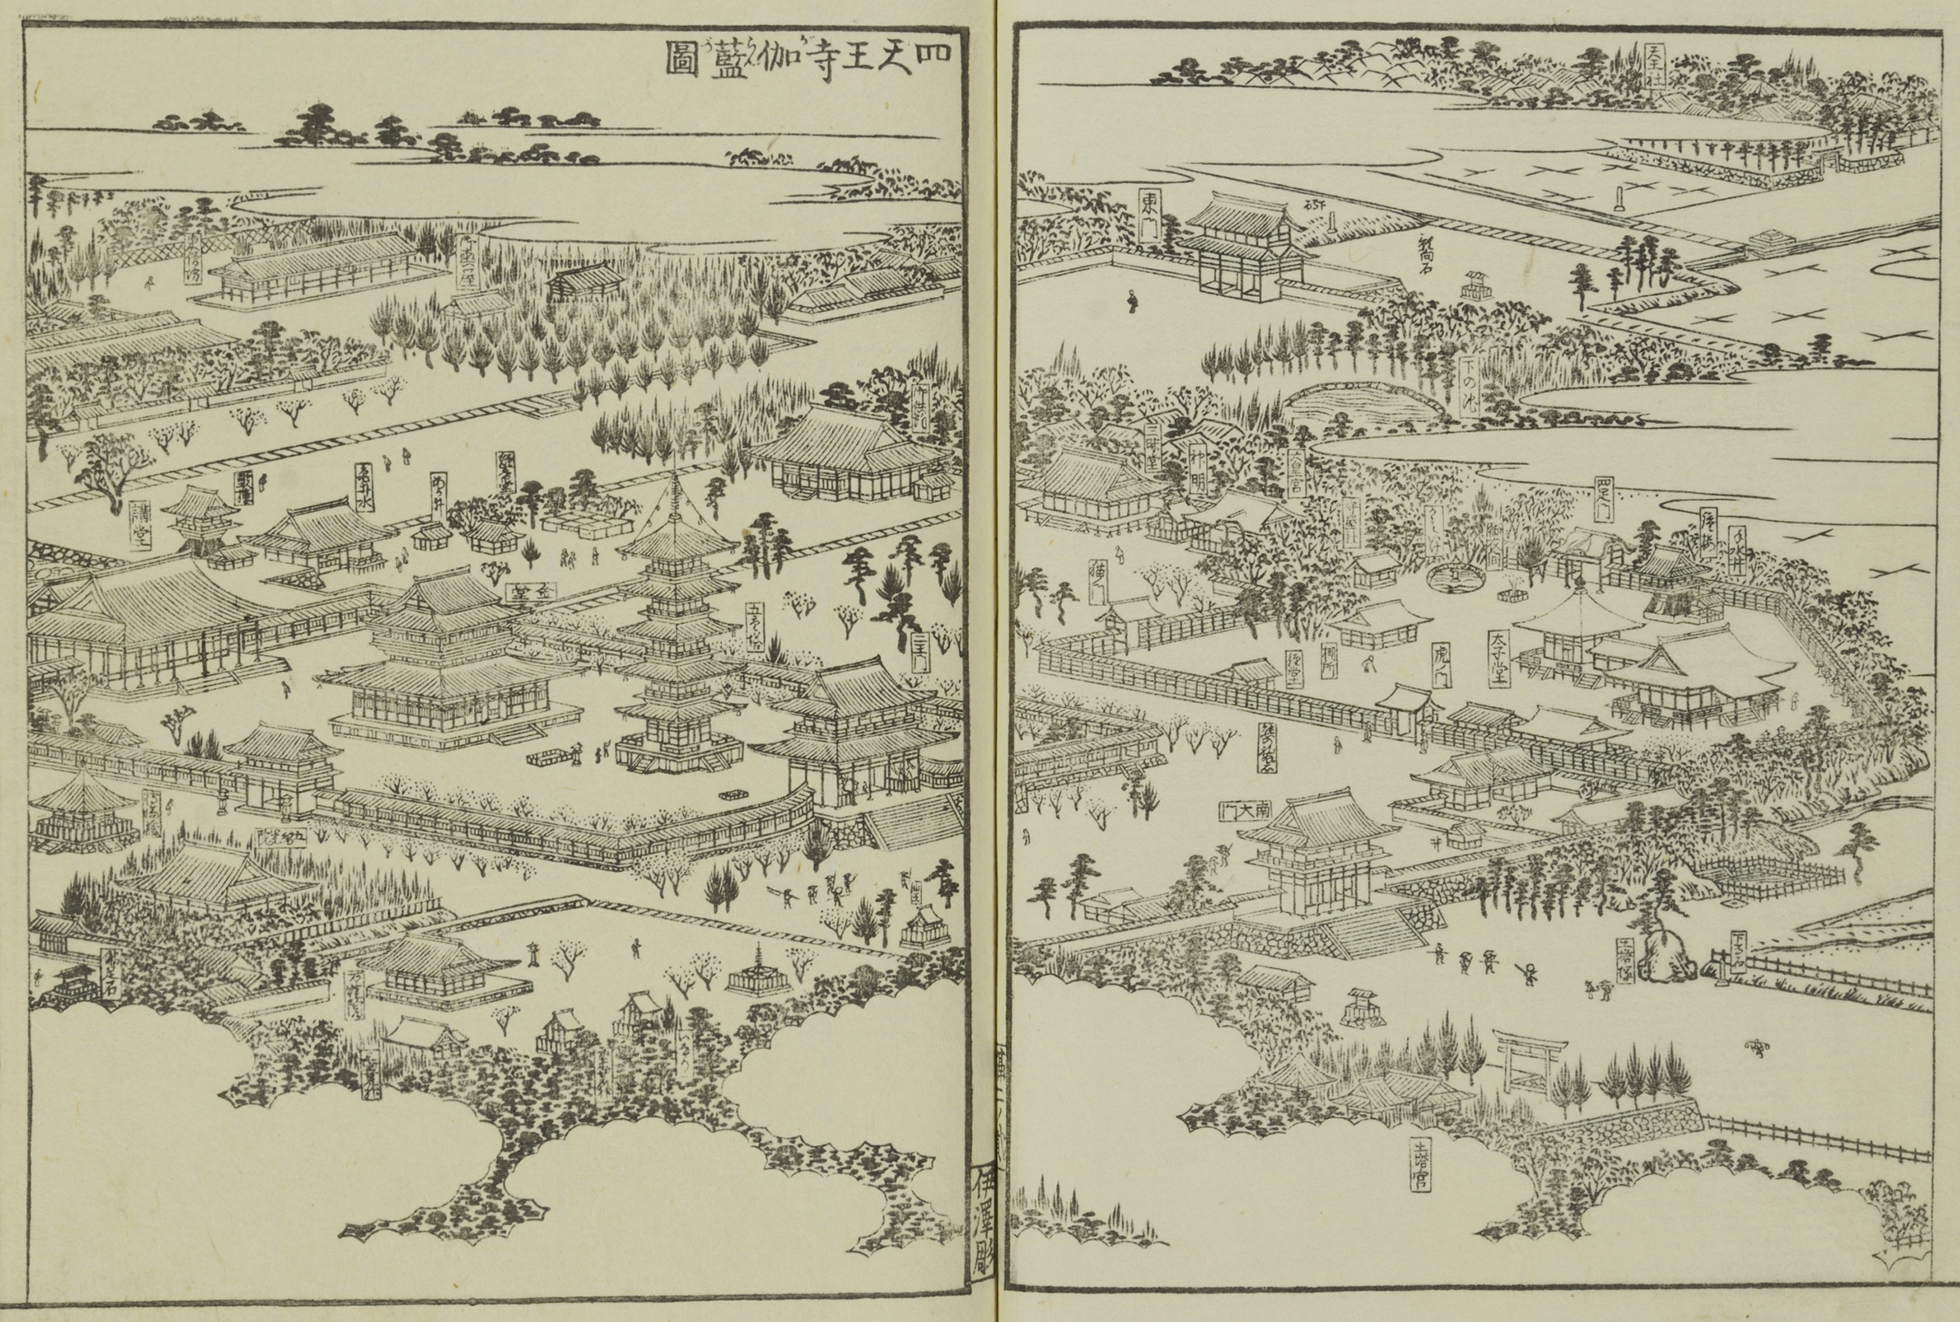 A black and white woodblock print showing the temple district in Osaka from above.